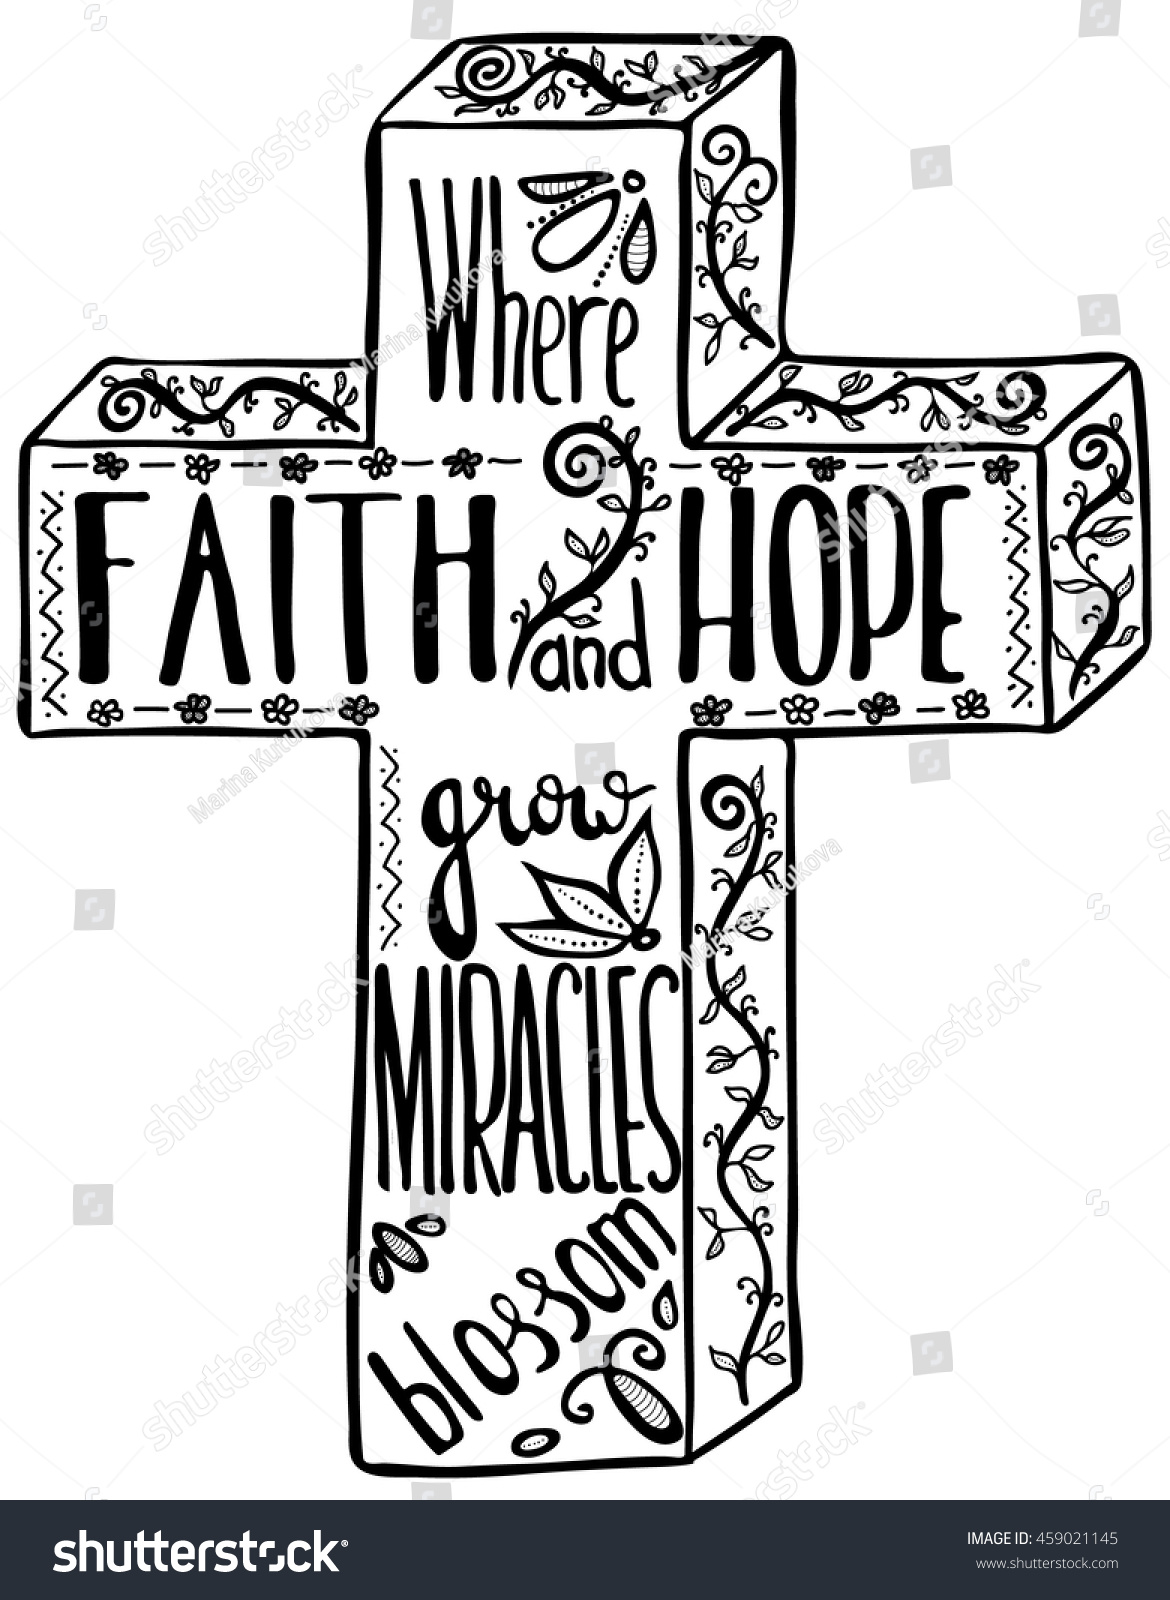 Faith and hope inspirational and motivational quote cross modern brush calligraphy hand